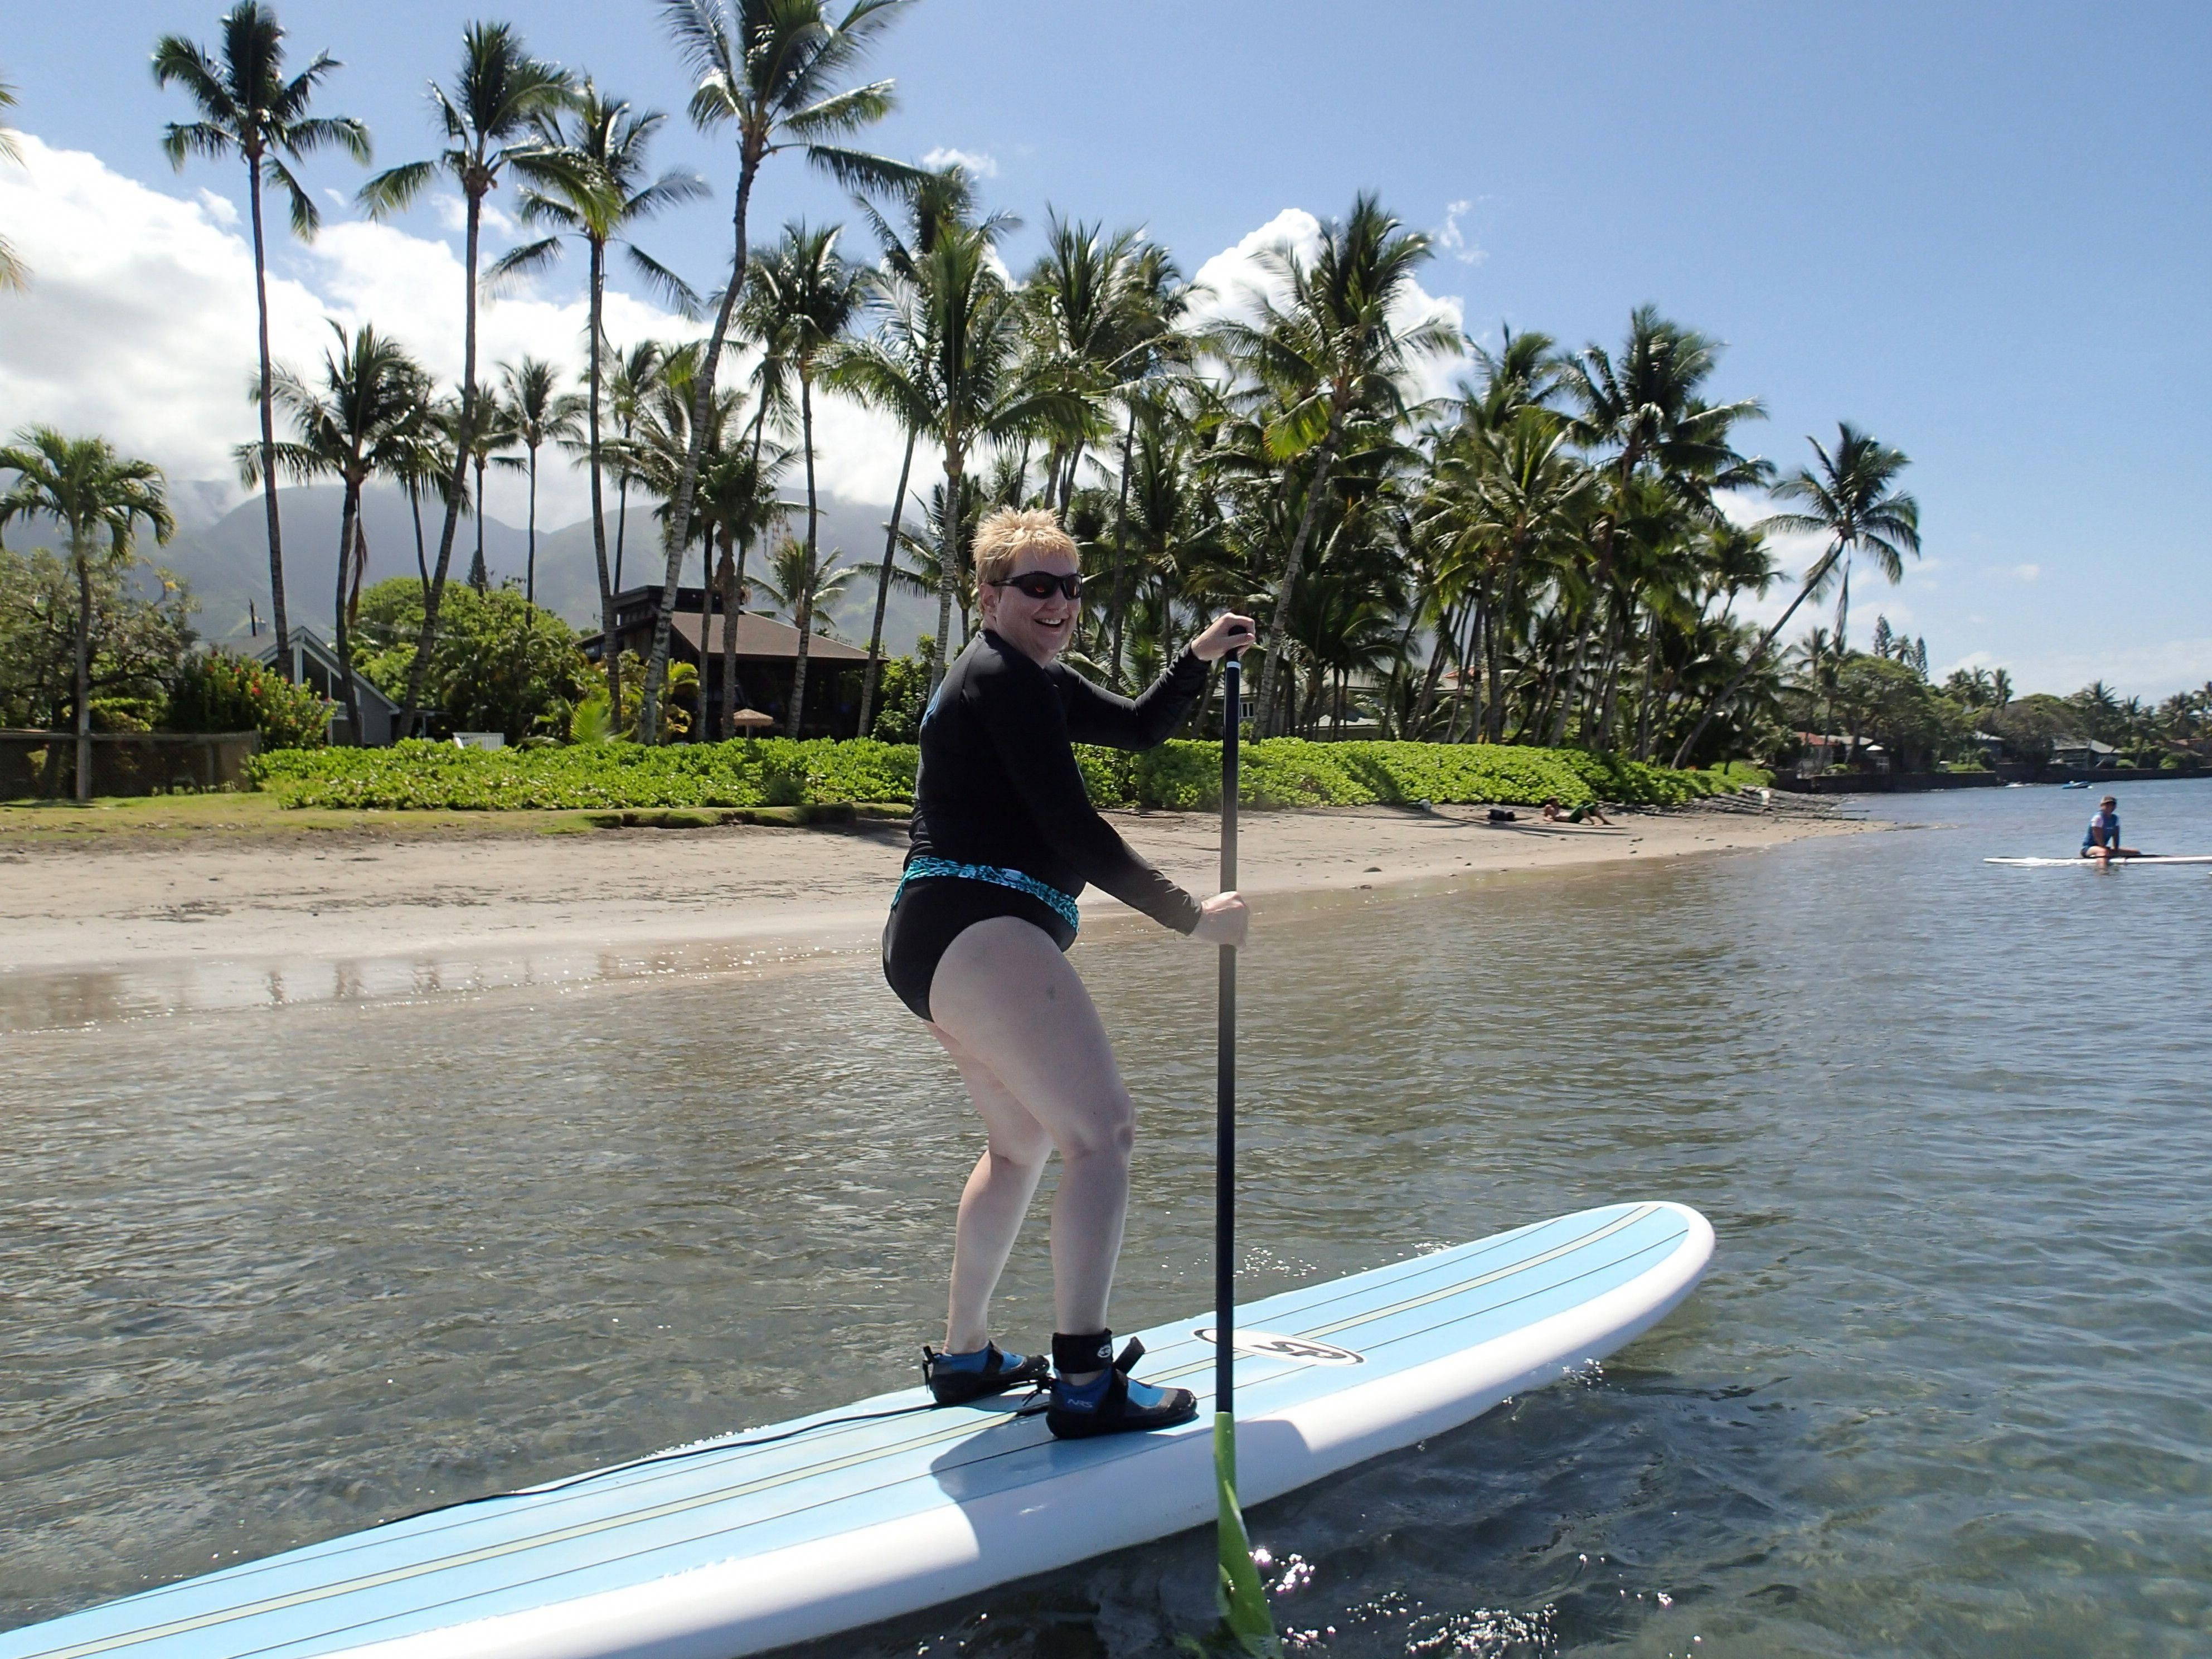 Try Stand Up Paddle Boarding with a surf champion